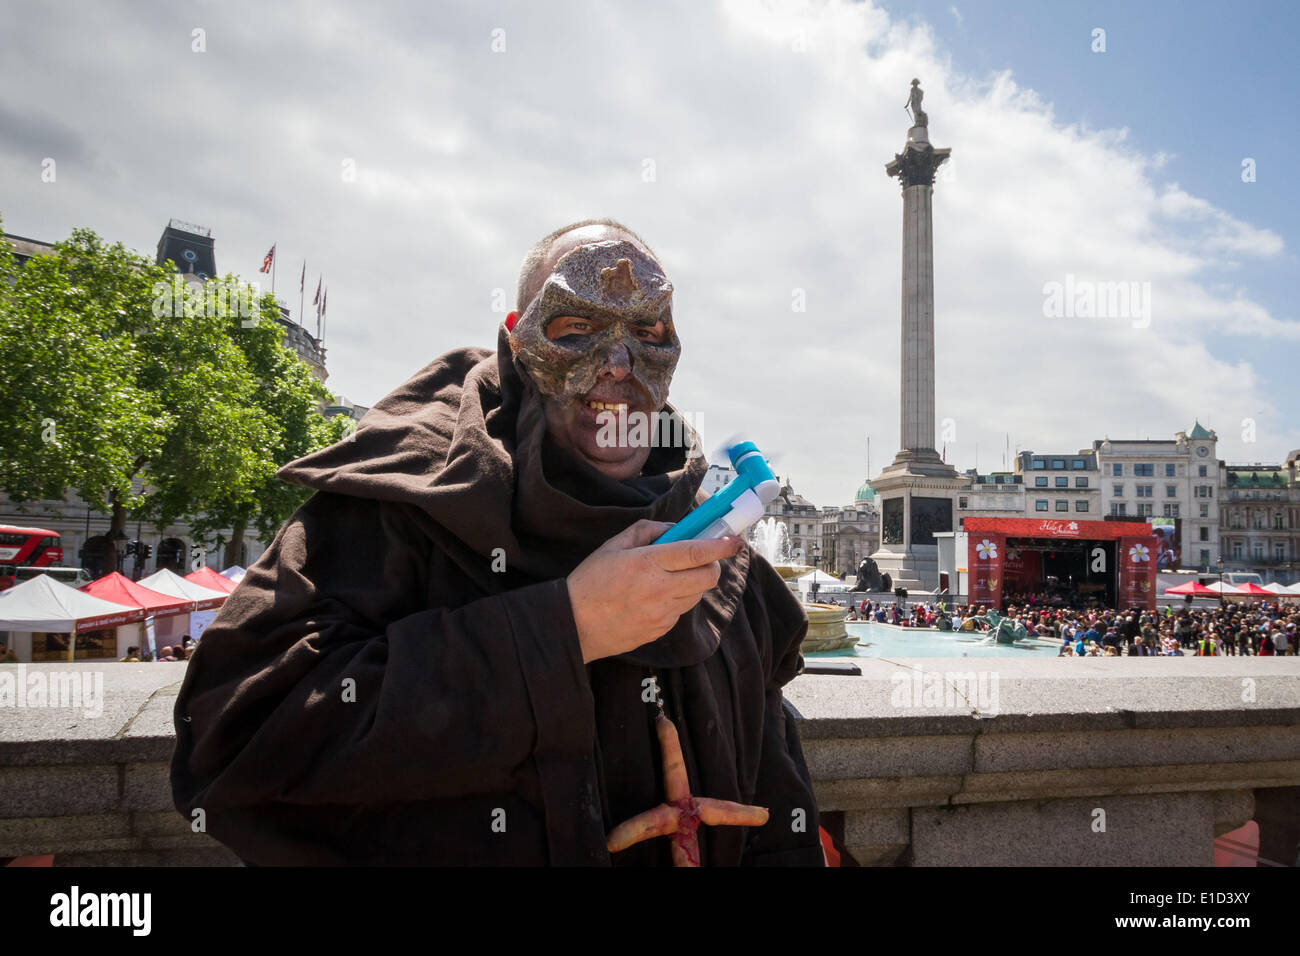 London, UK. 31st May 2014. Zombie Walk in London Credit:  Guy Corbishley/Alamy Live News Stock Photo